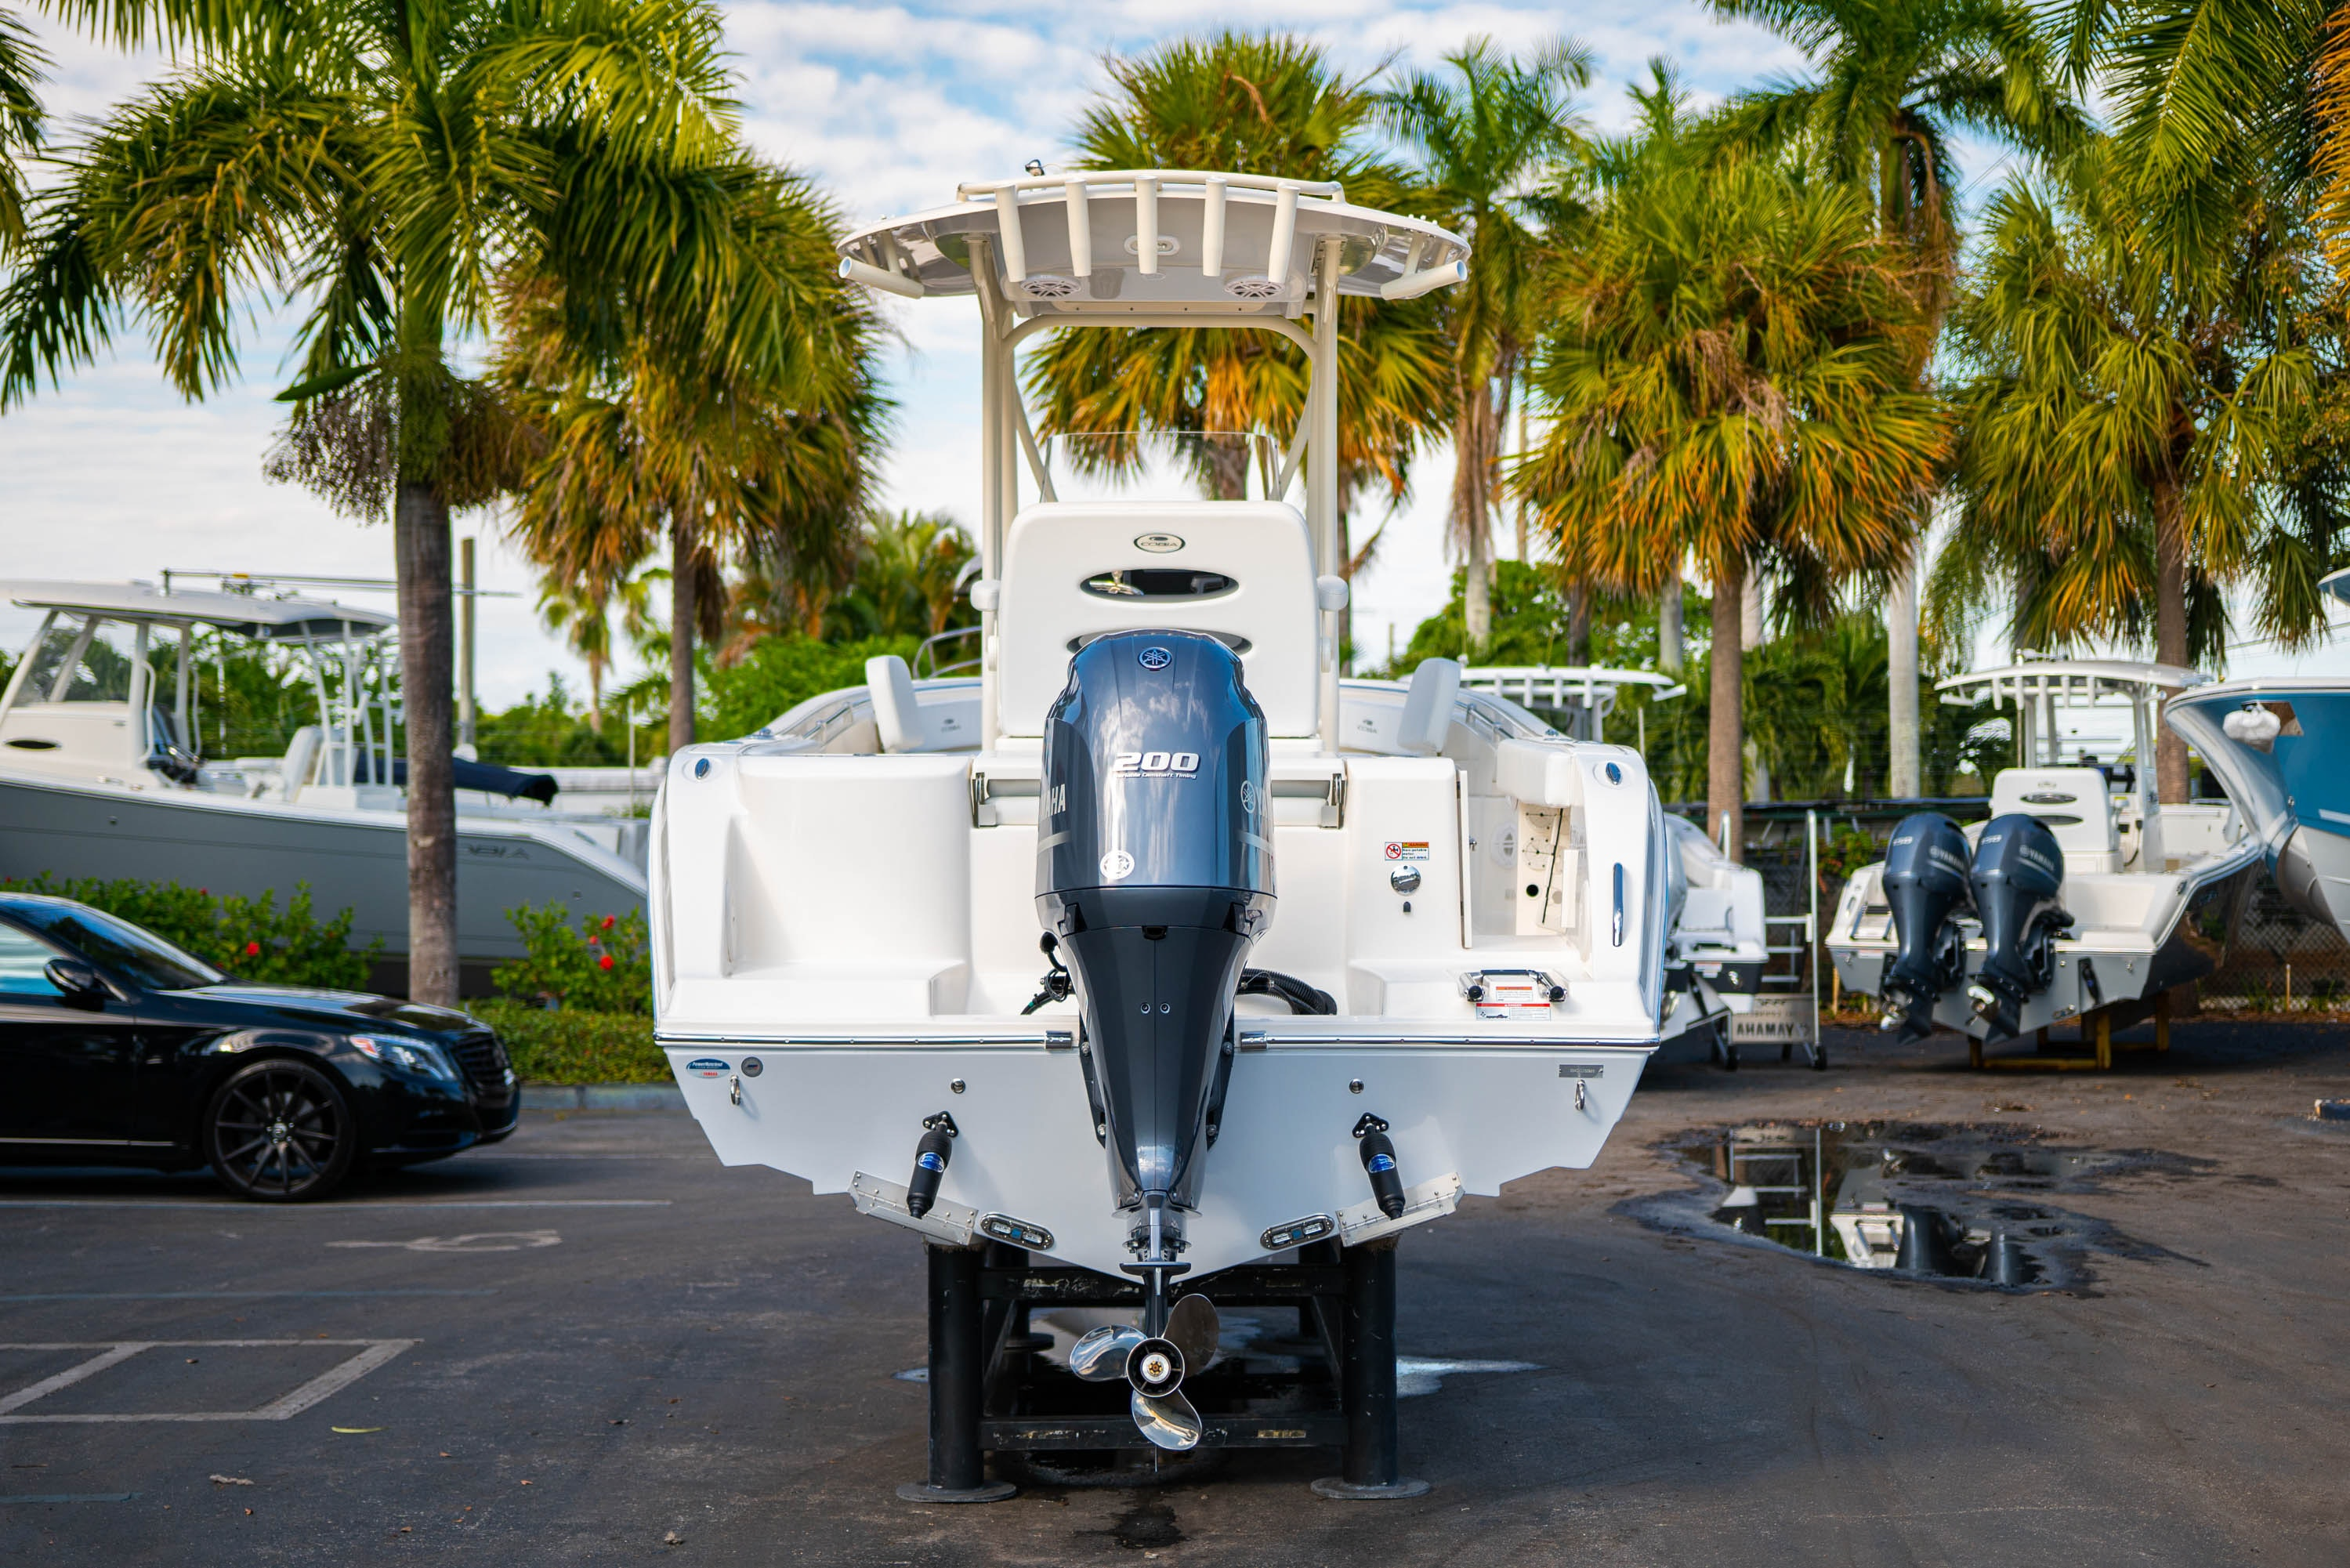 Thumbnail 6 for New 2020 Cobia 220 CC boat for sale in West Palm Beach, FL